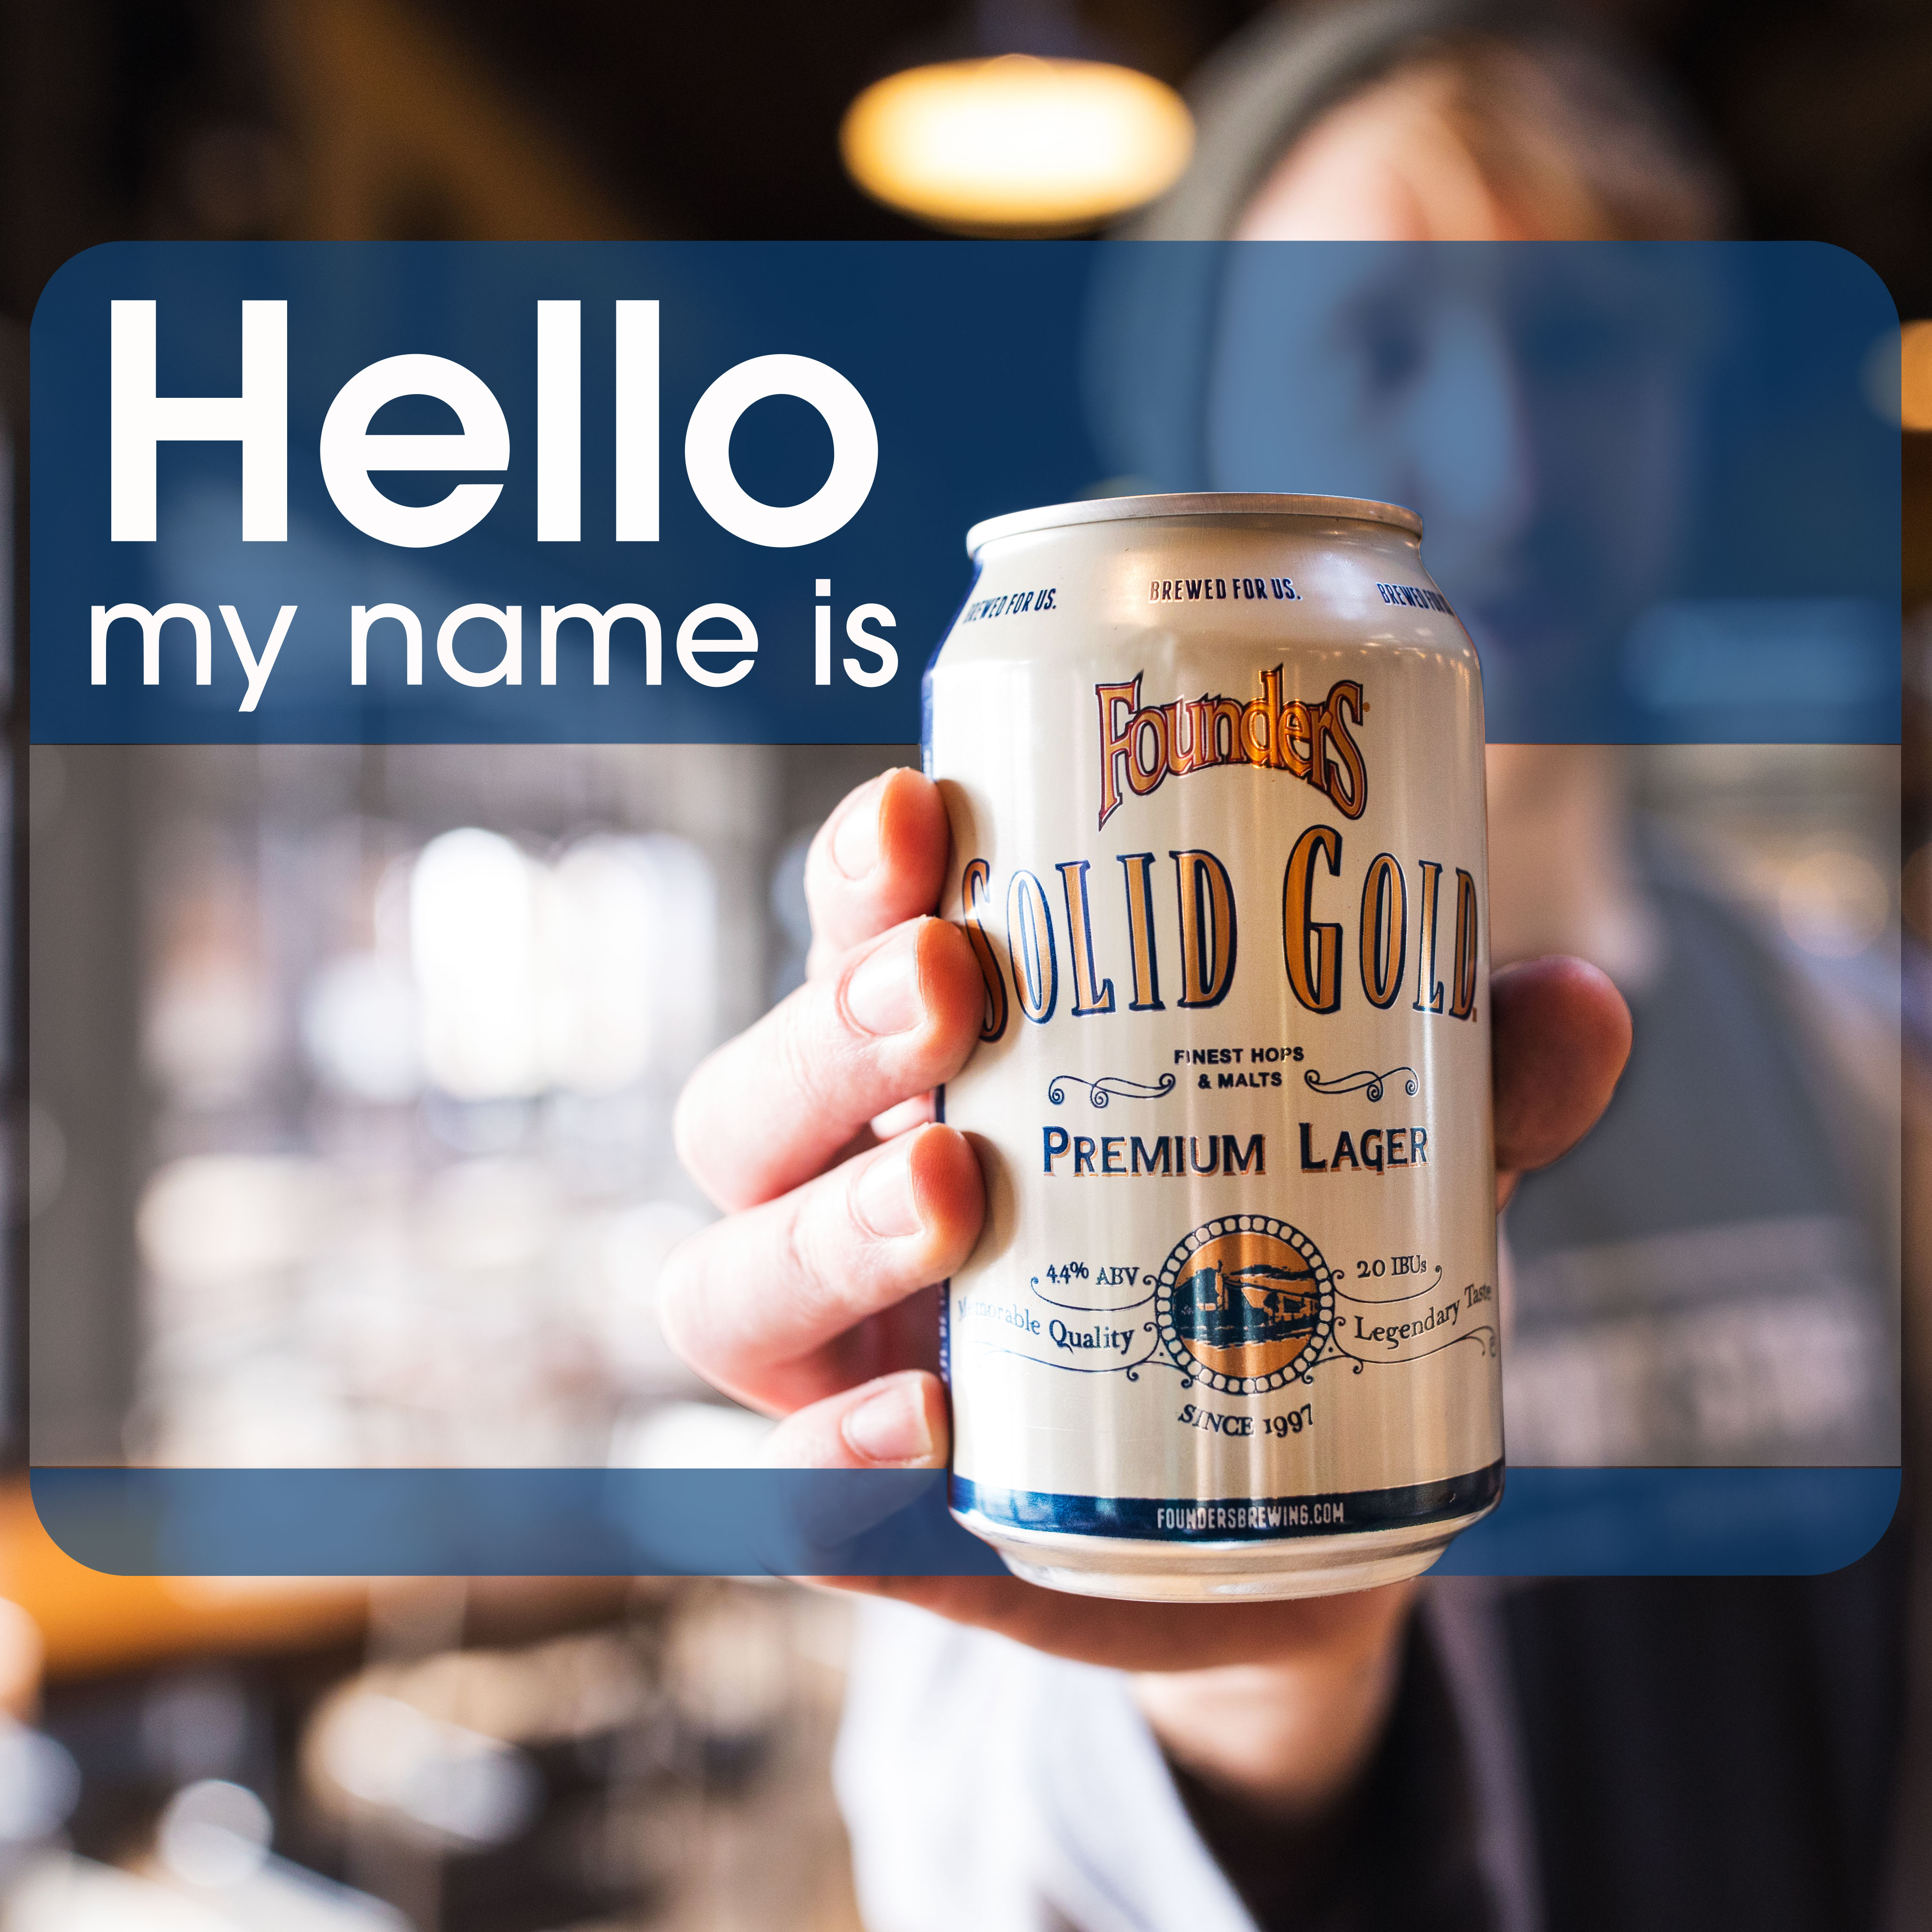 Hello my name is Founders Solid Gold